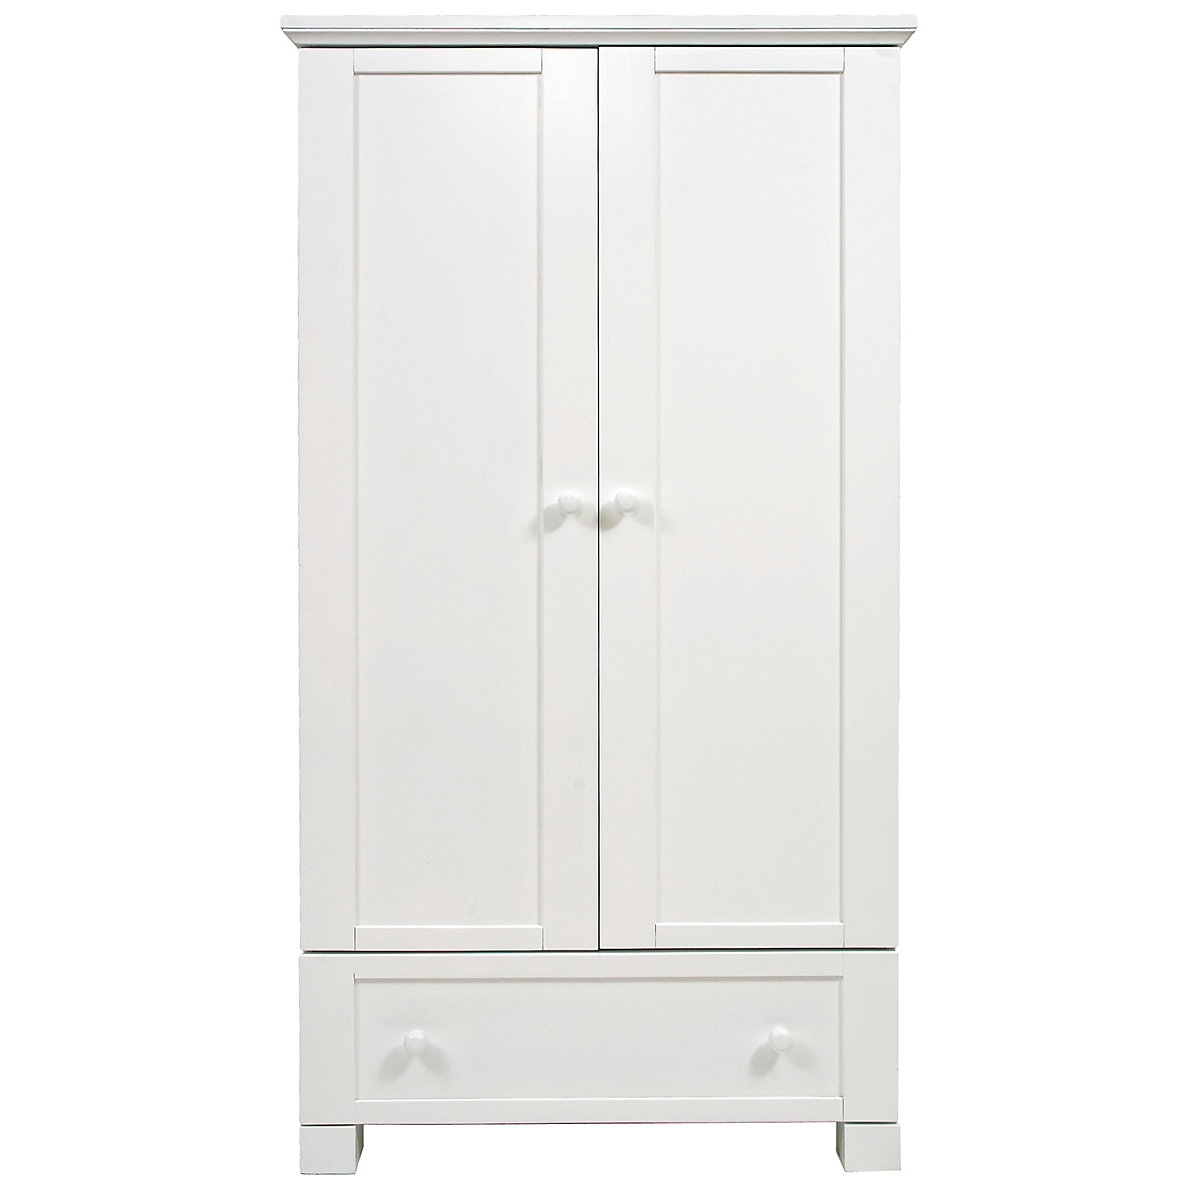 Boys & Girls Wardrobes – Cheap Deals With Regard To Trendy Double Rail White Wardrobes (View 3 of 15)